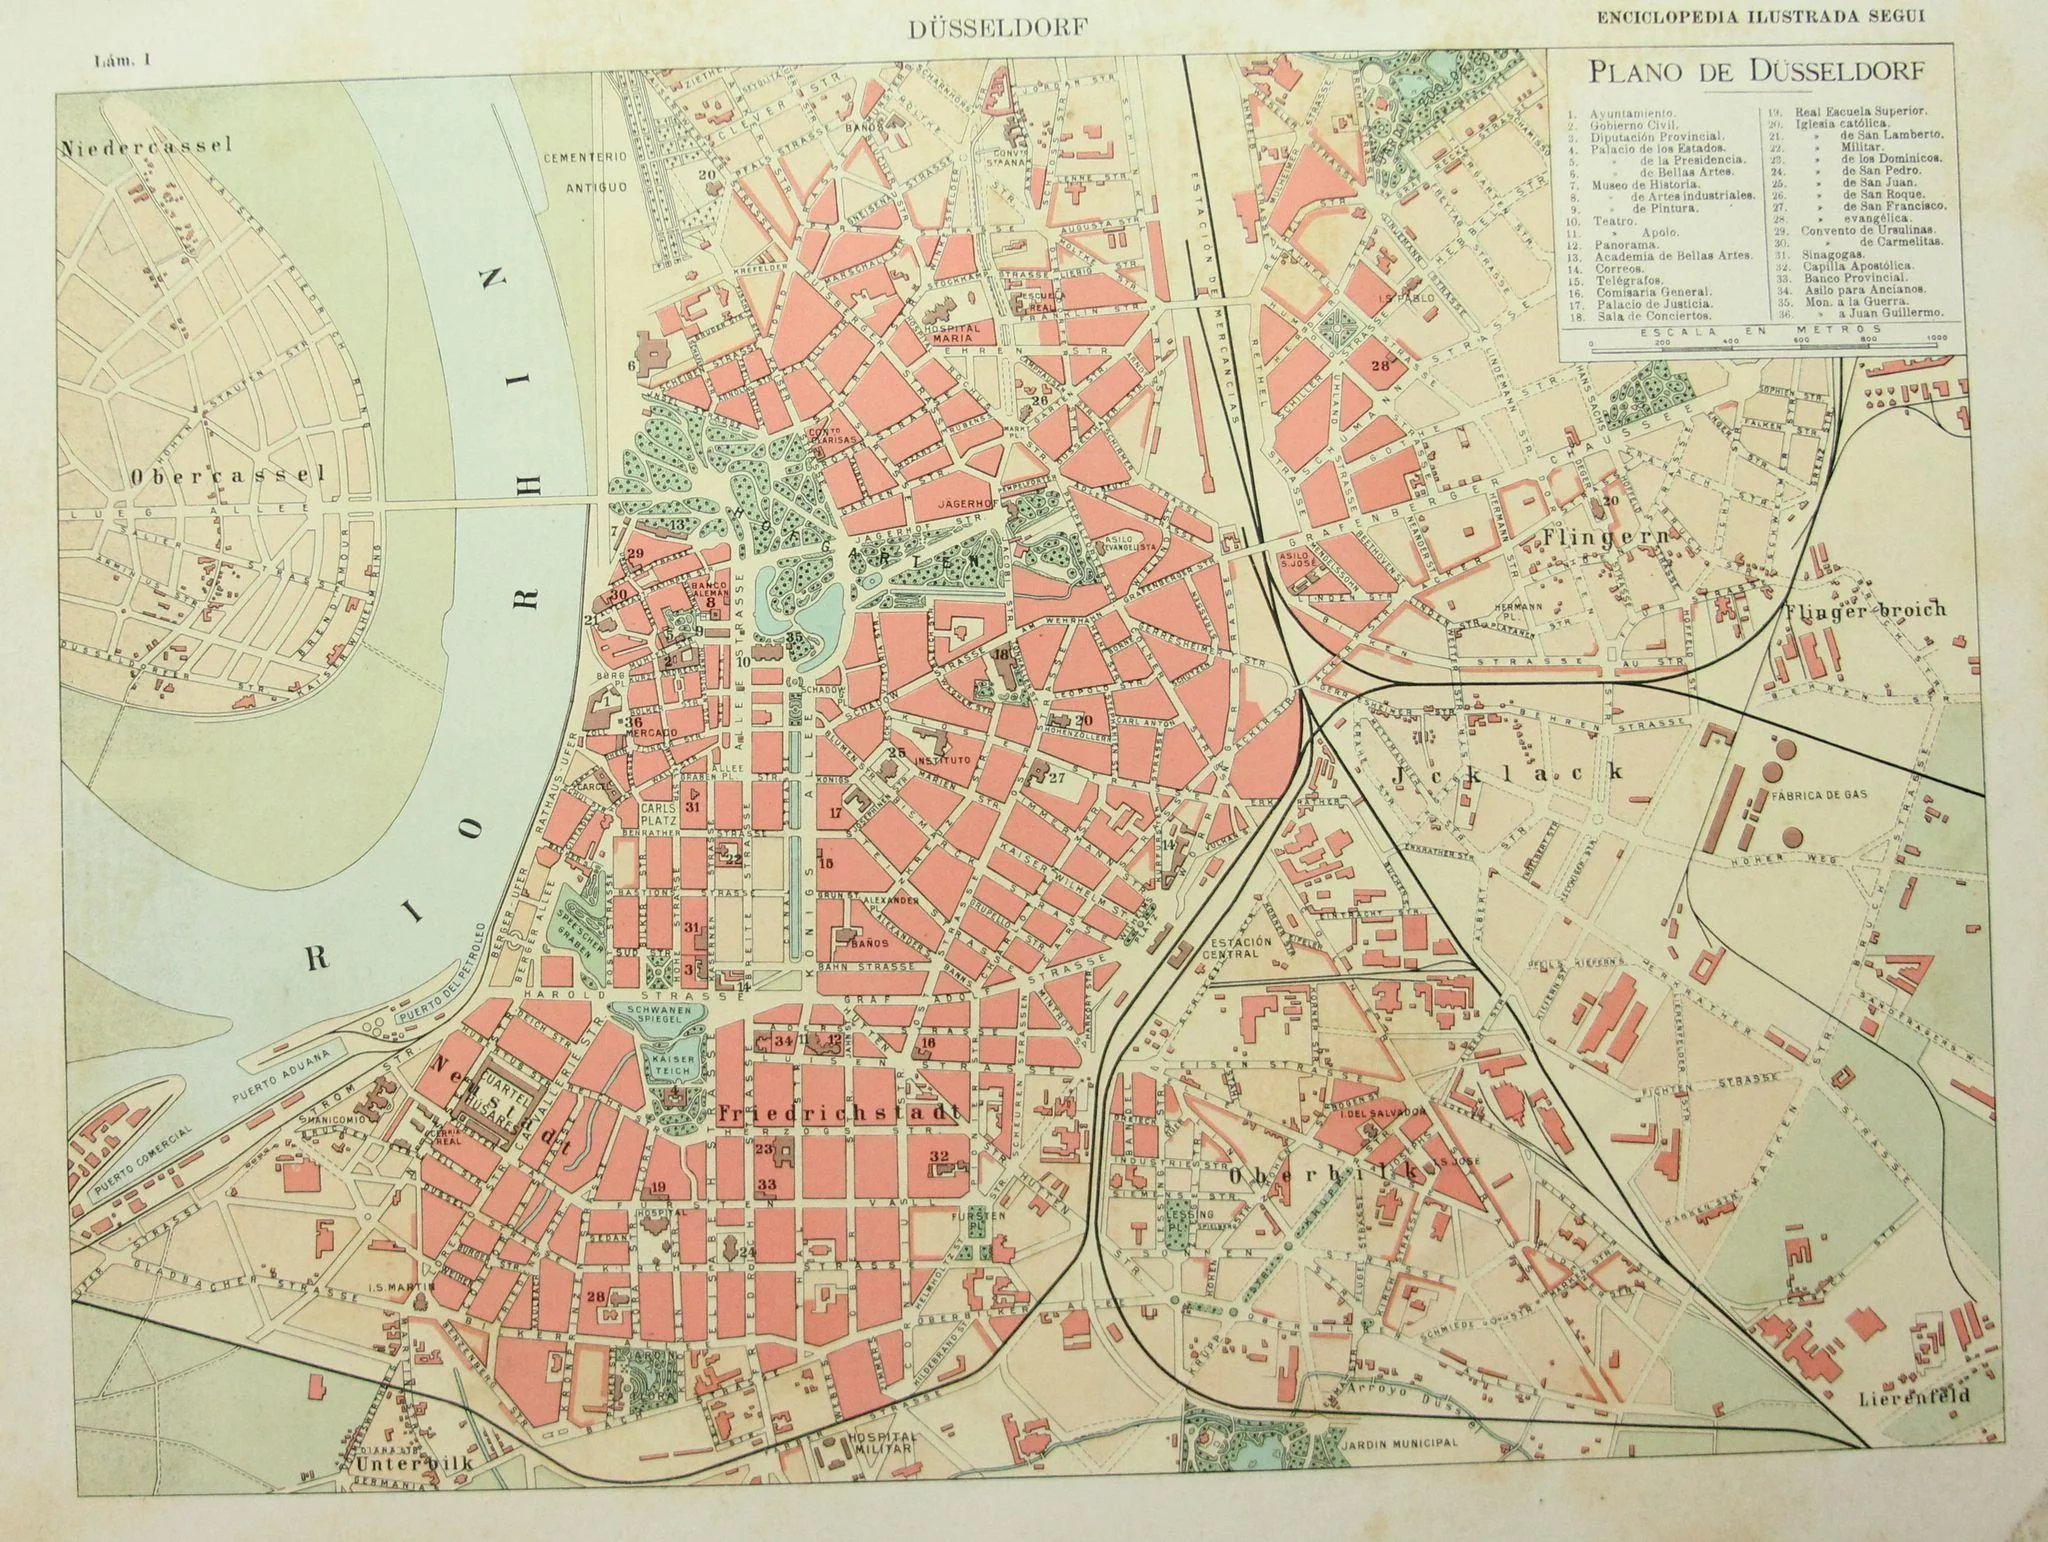 Art Nouveau Pintura Art Nouveau Map Of Düsseldorf Including Train Lines Photos Of Sights 1900 S Polychrome Lithograph